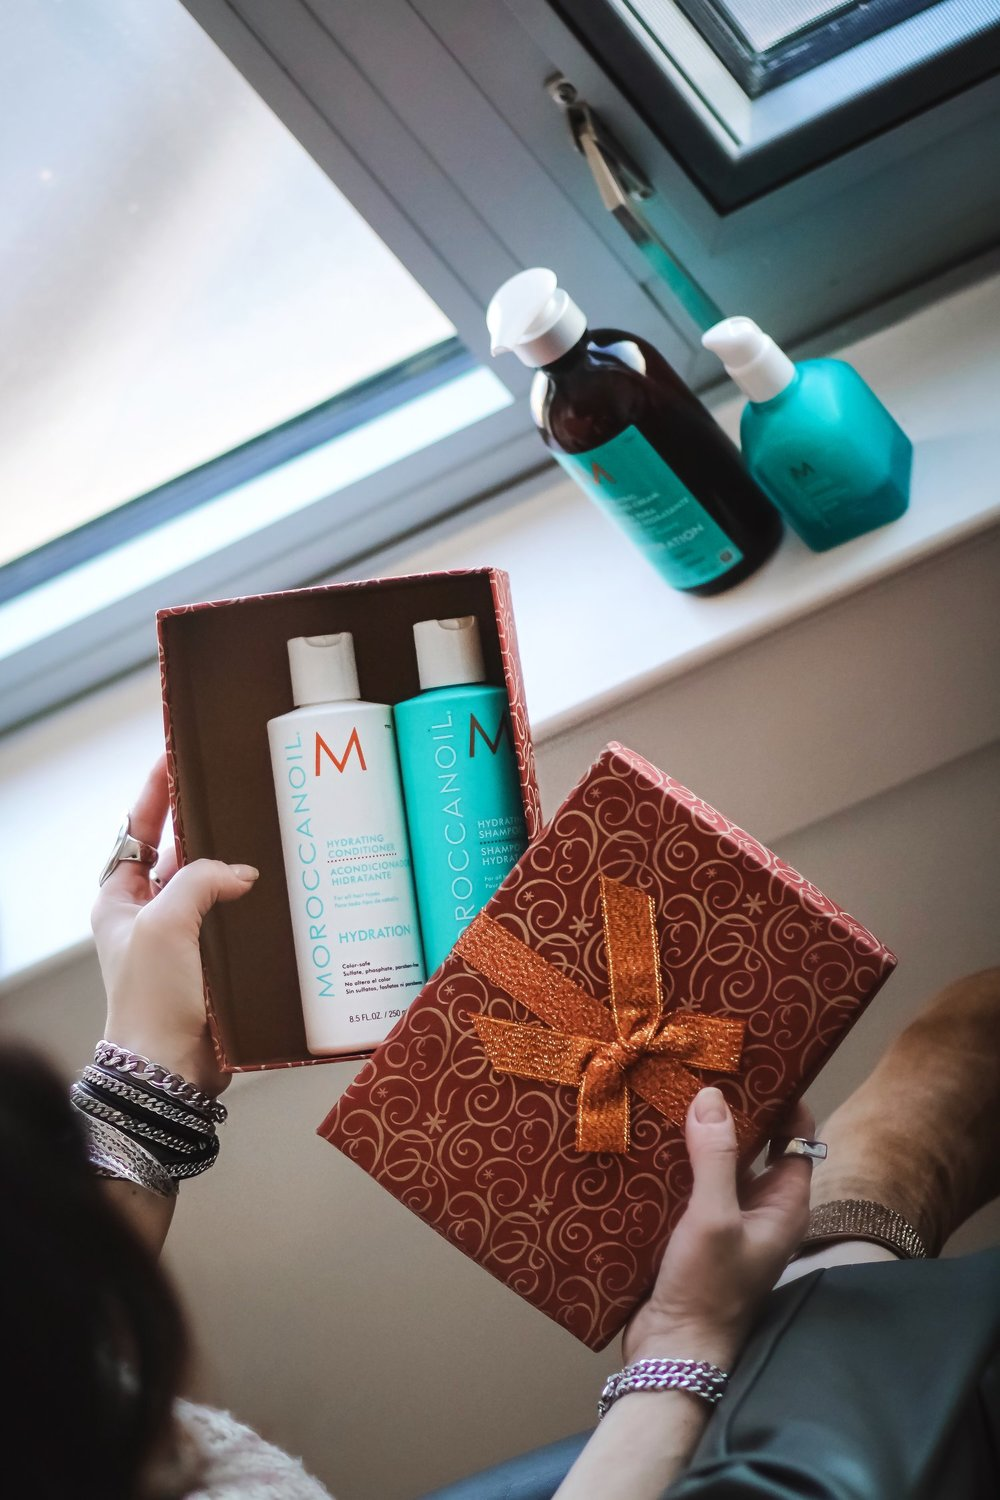 MoroccanOil-hydrating-shampoo-conditioner